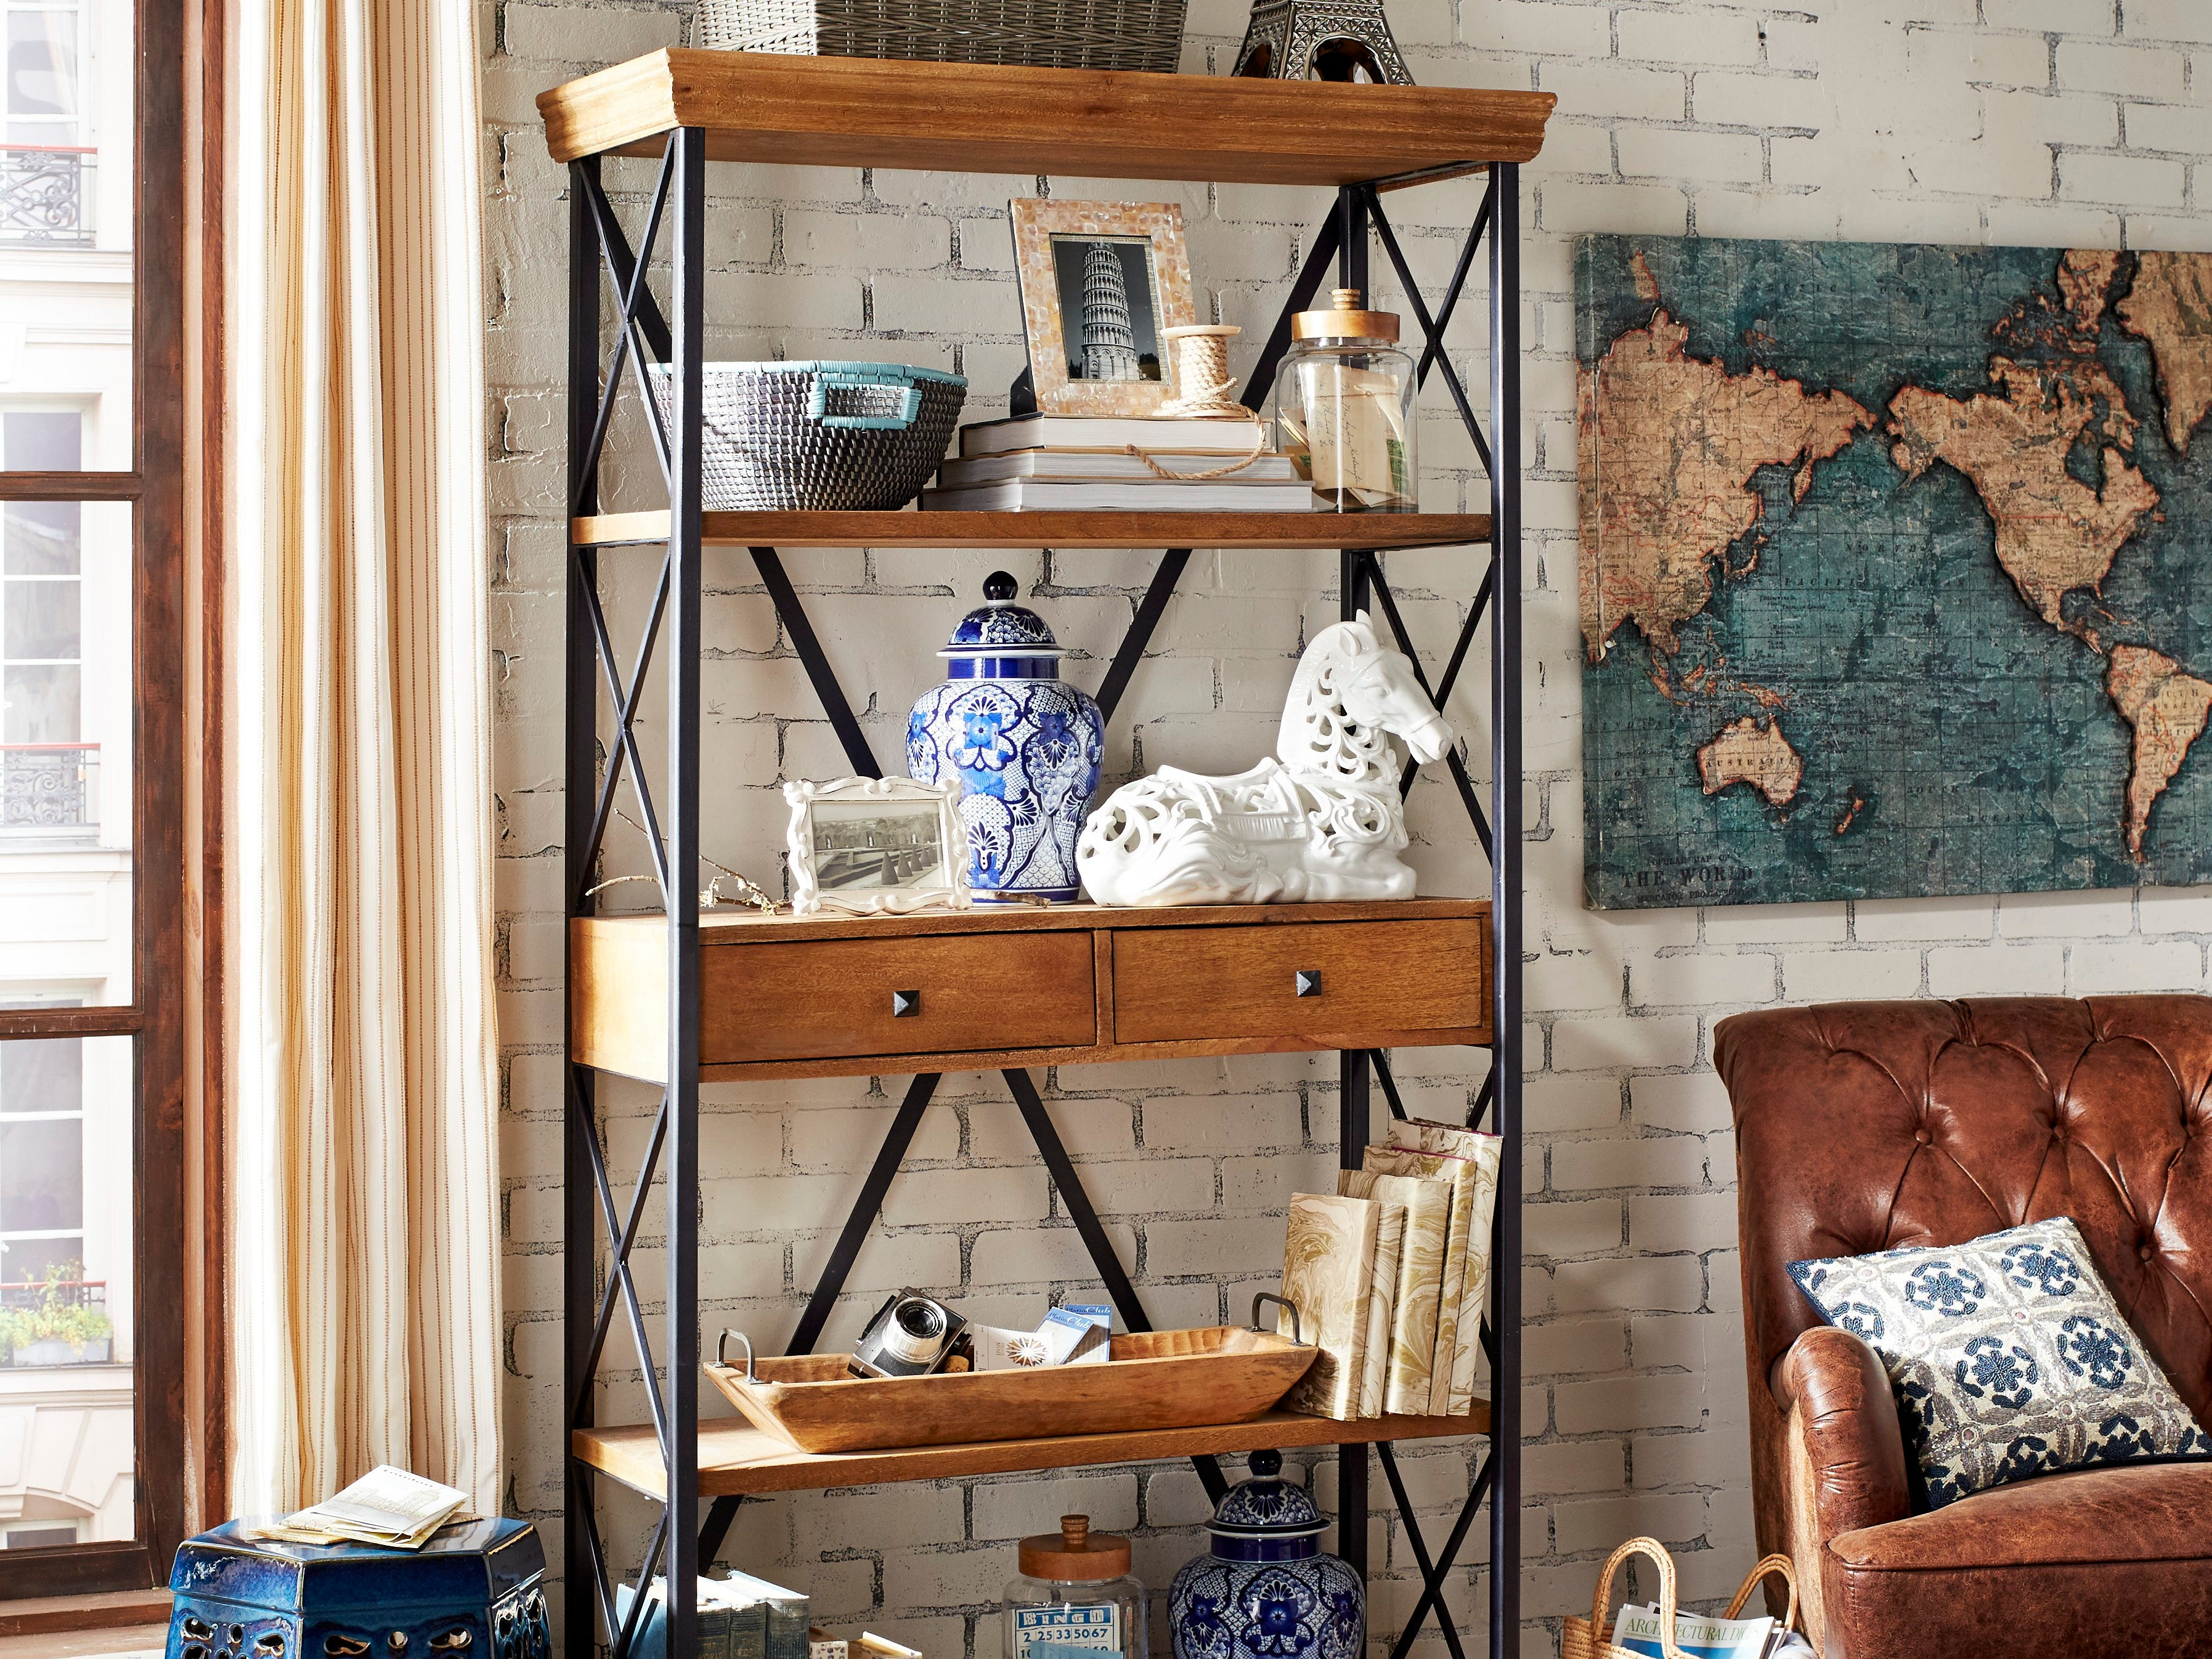 Blue and white collectibles like these ginger jars from Pier 1 Imports are showcased in these bookshelves.